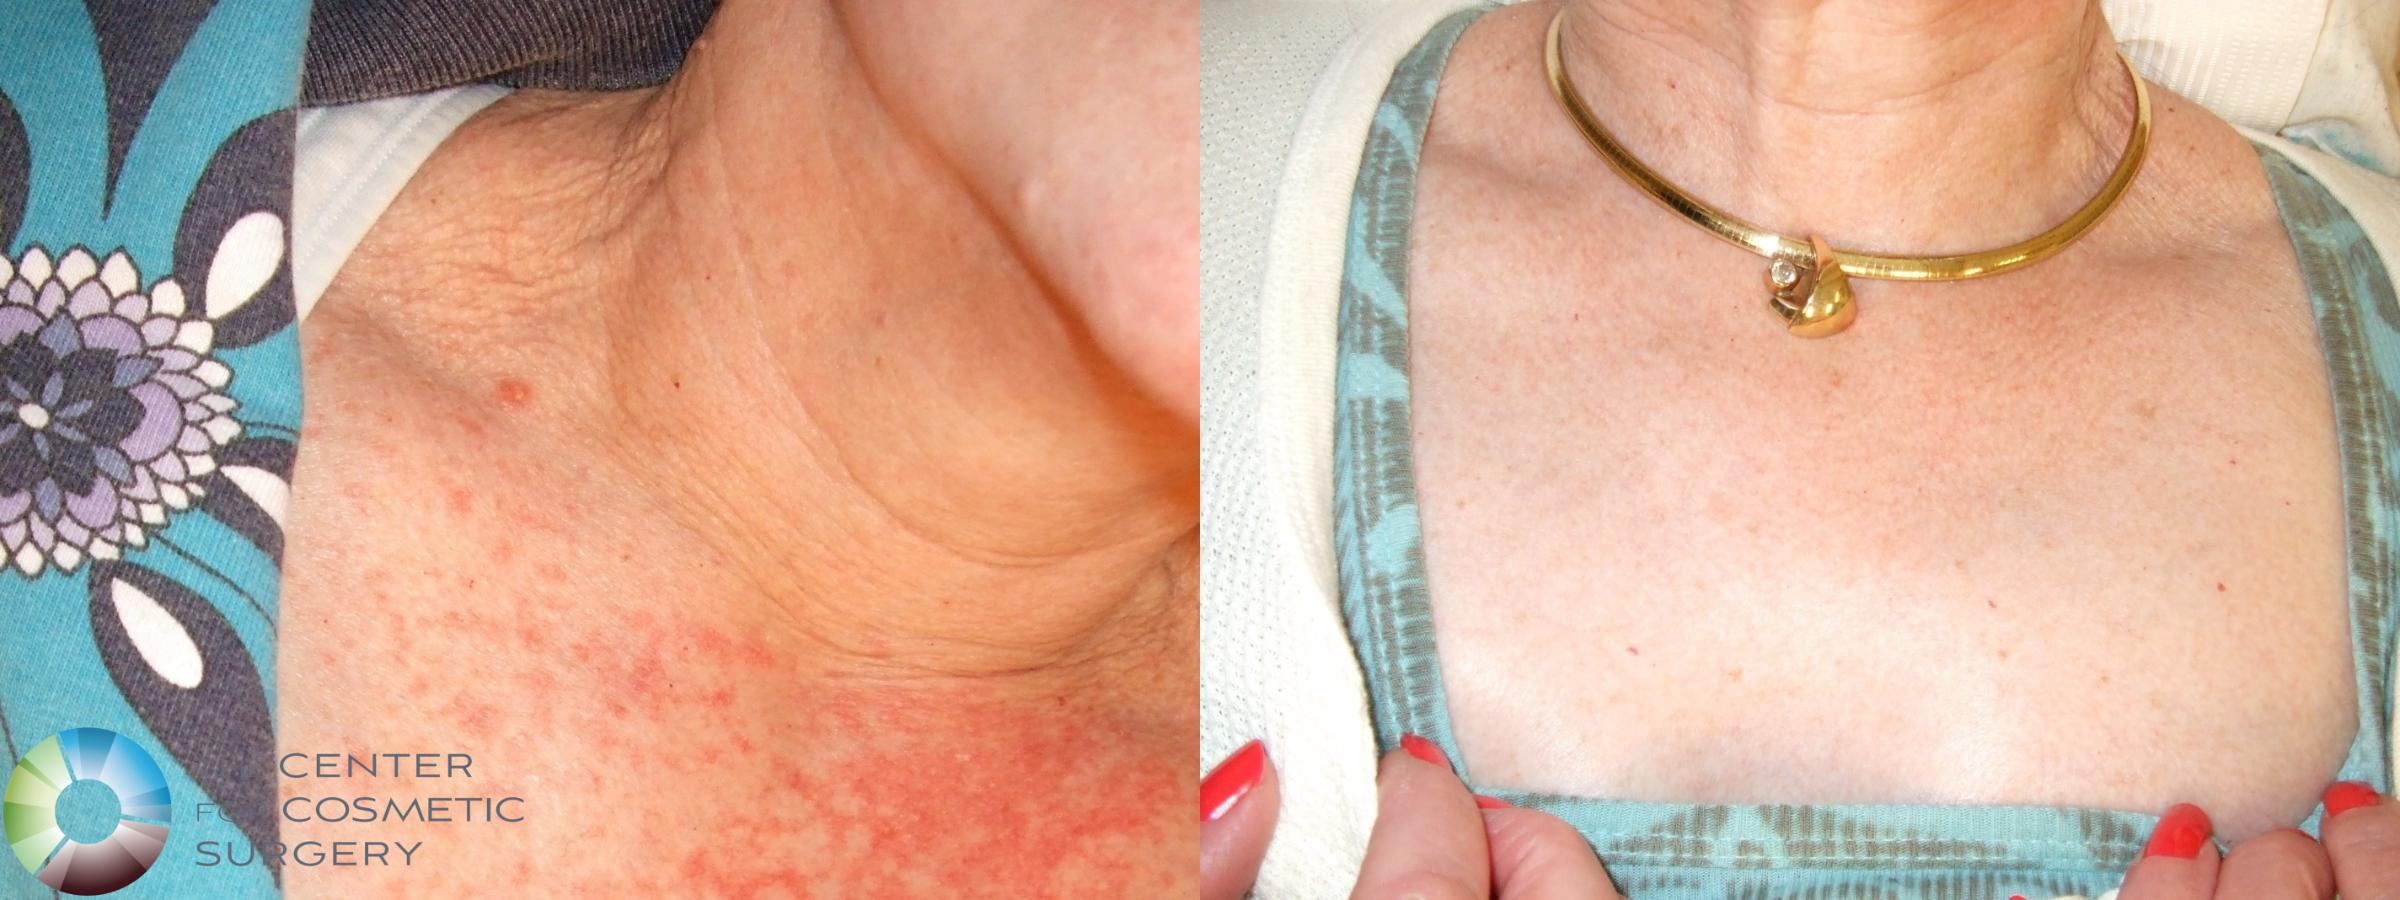 Chemical Peels/Microdermabrasion Case 264 Before & After View #1 | Golden, CO | The Center for Cosmetic Surgery